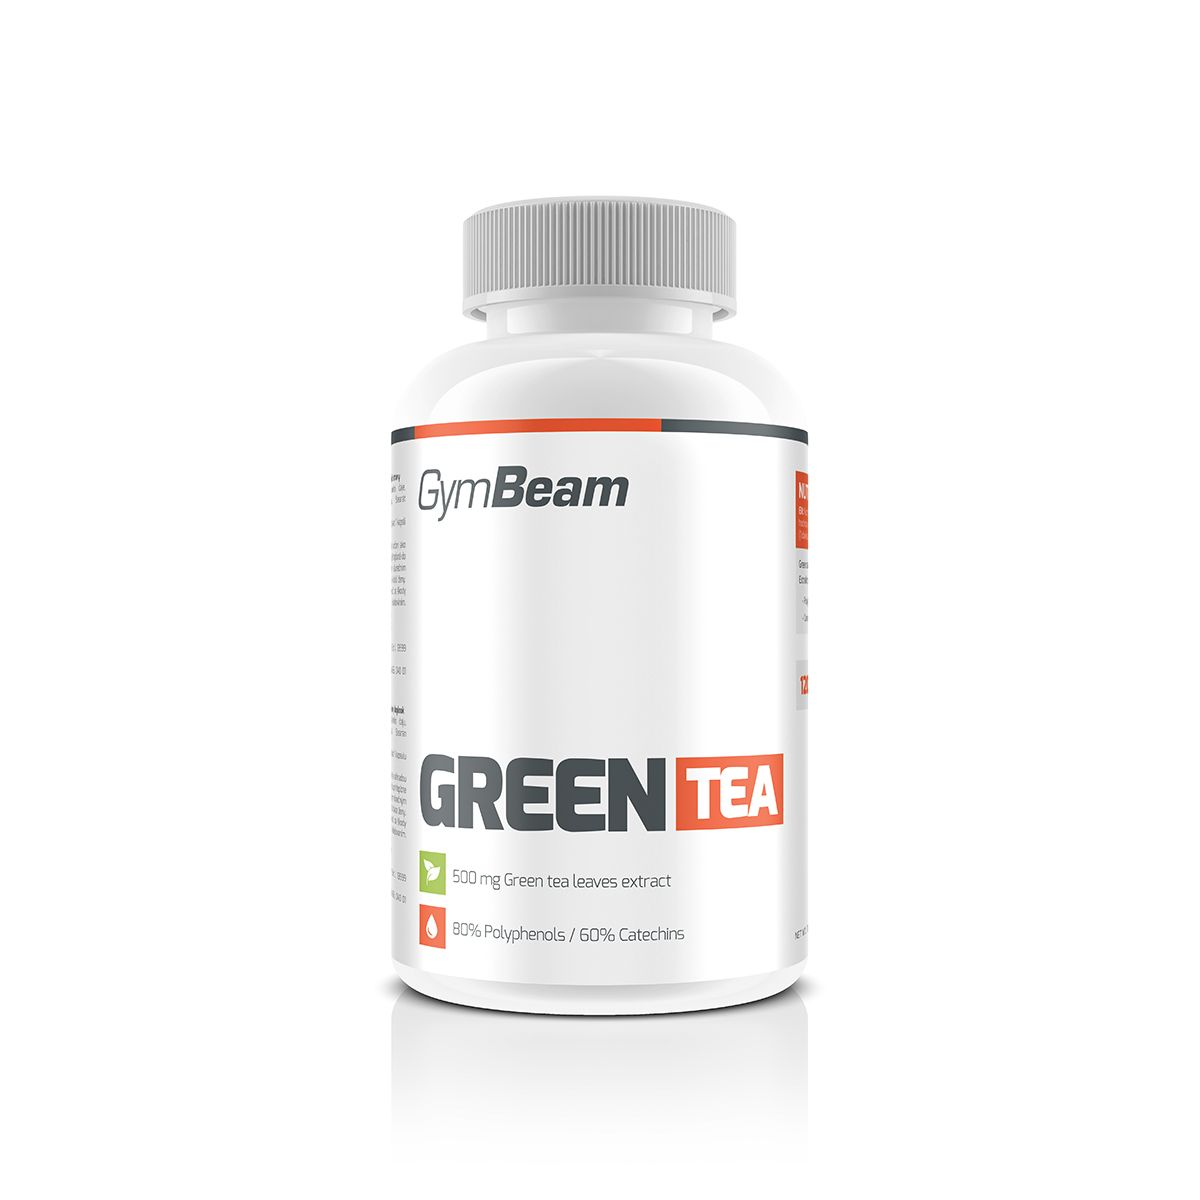 Green Tea - GymBeam